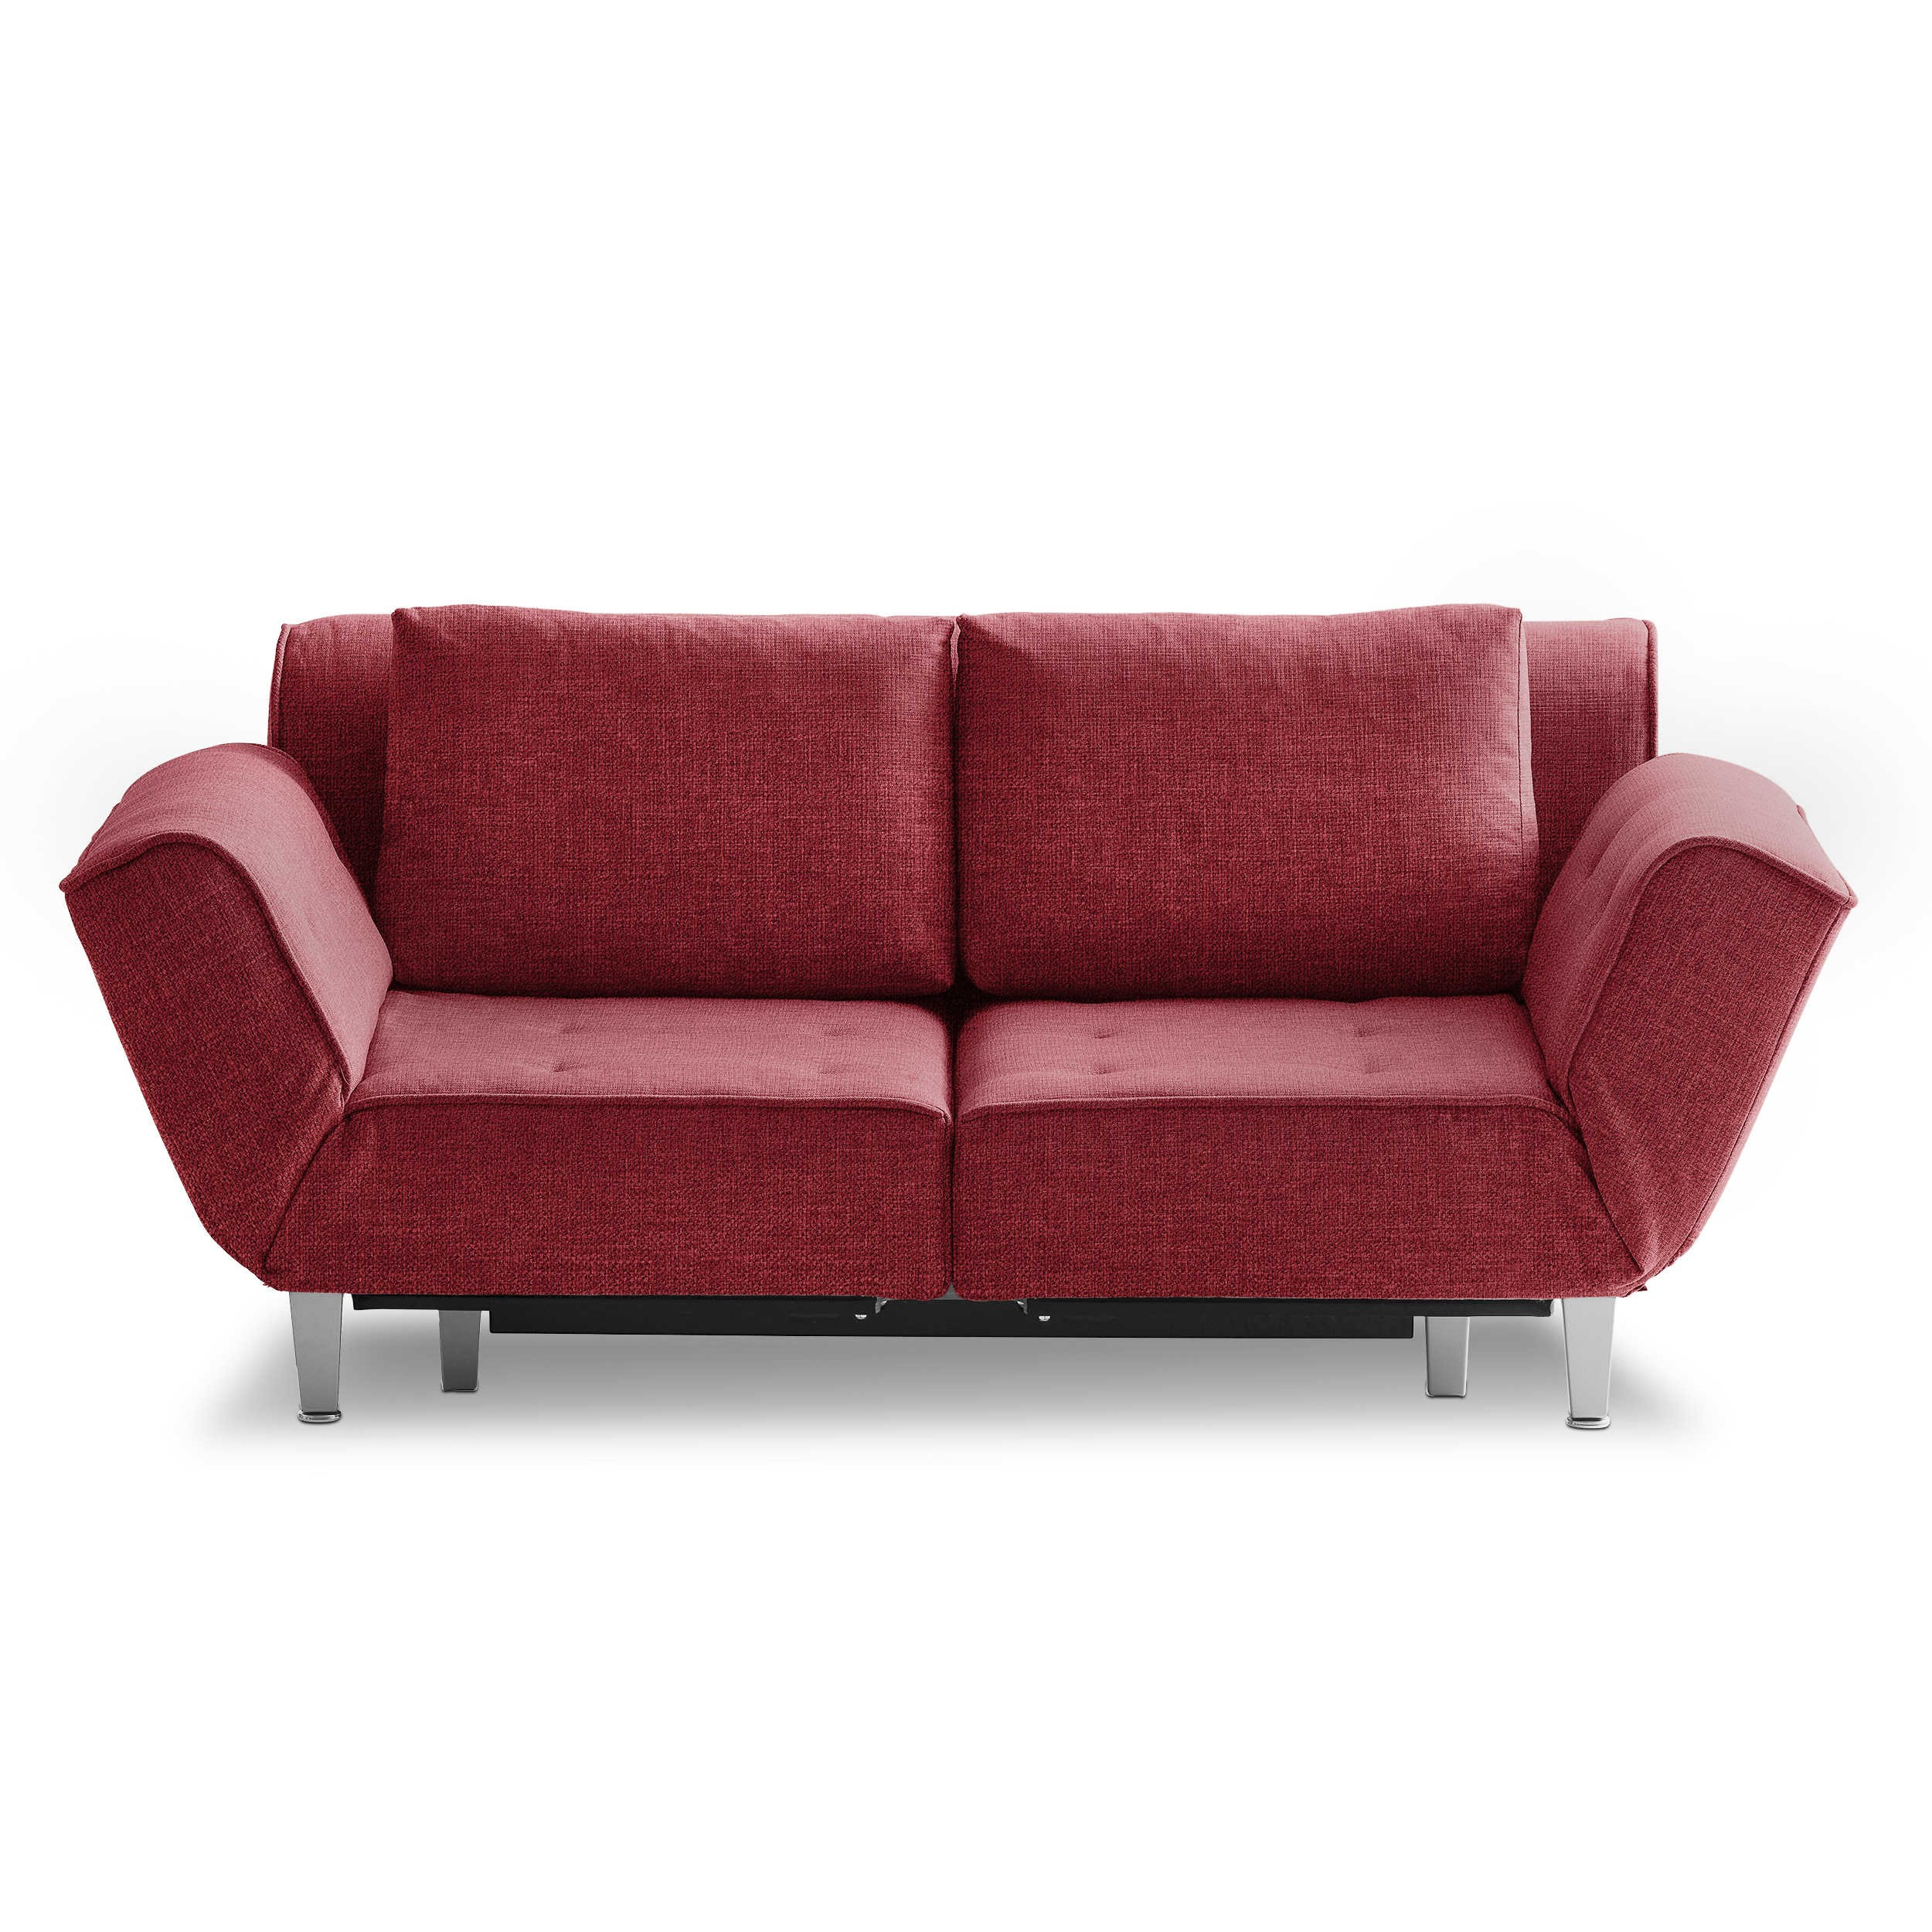 franz fertig schlafsofa joss rot stoff online kaufen bei. Black Bedroom Furniture Sets. Home Design Ideas